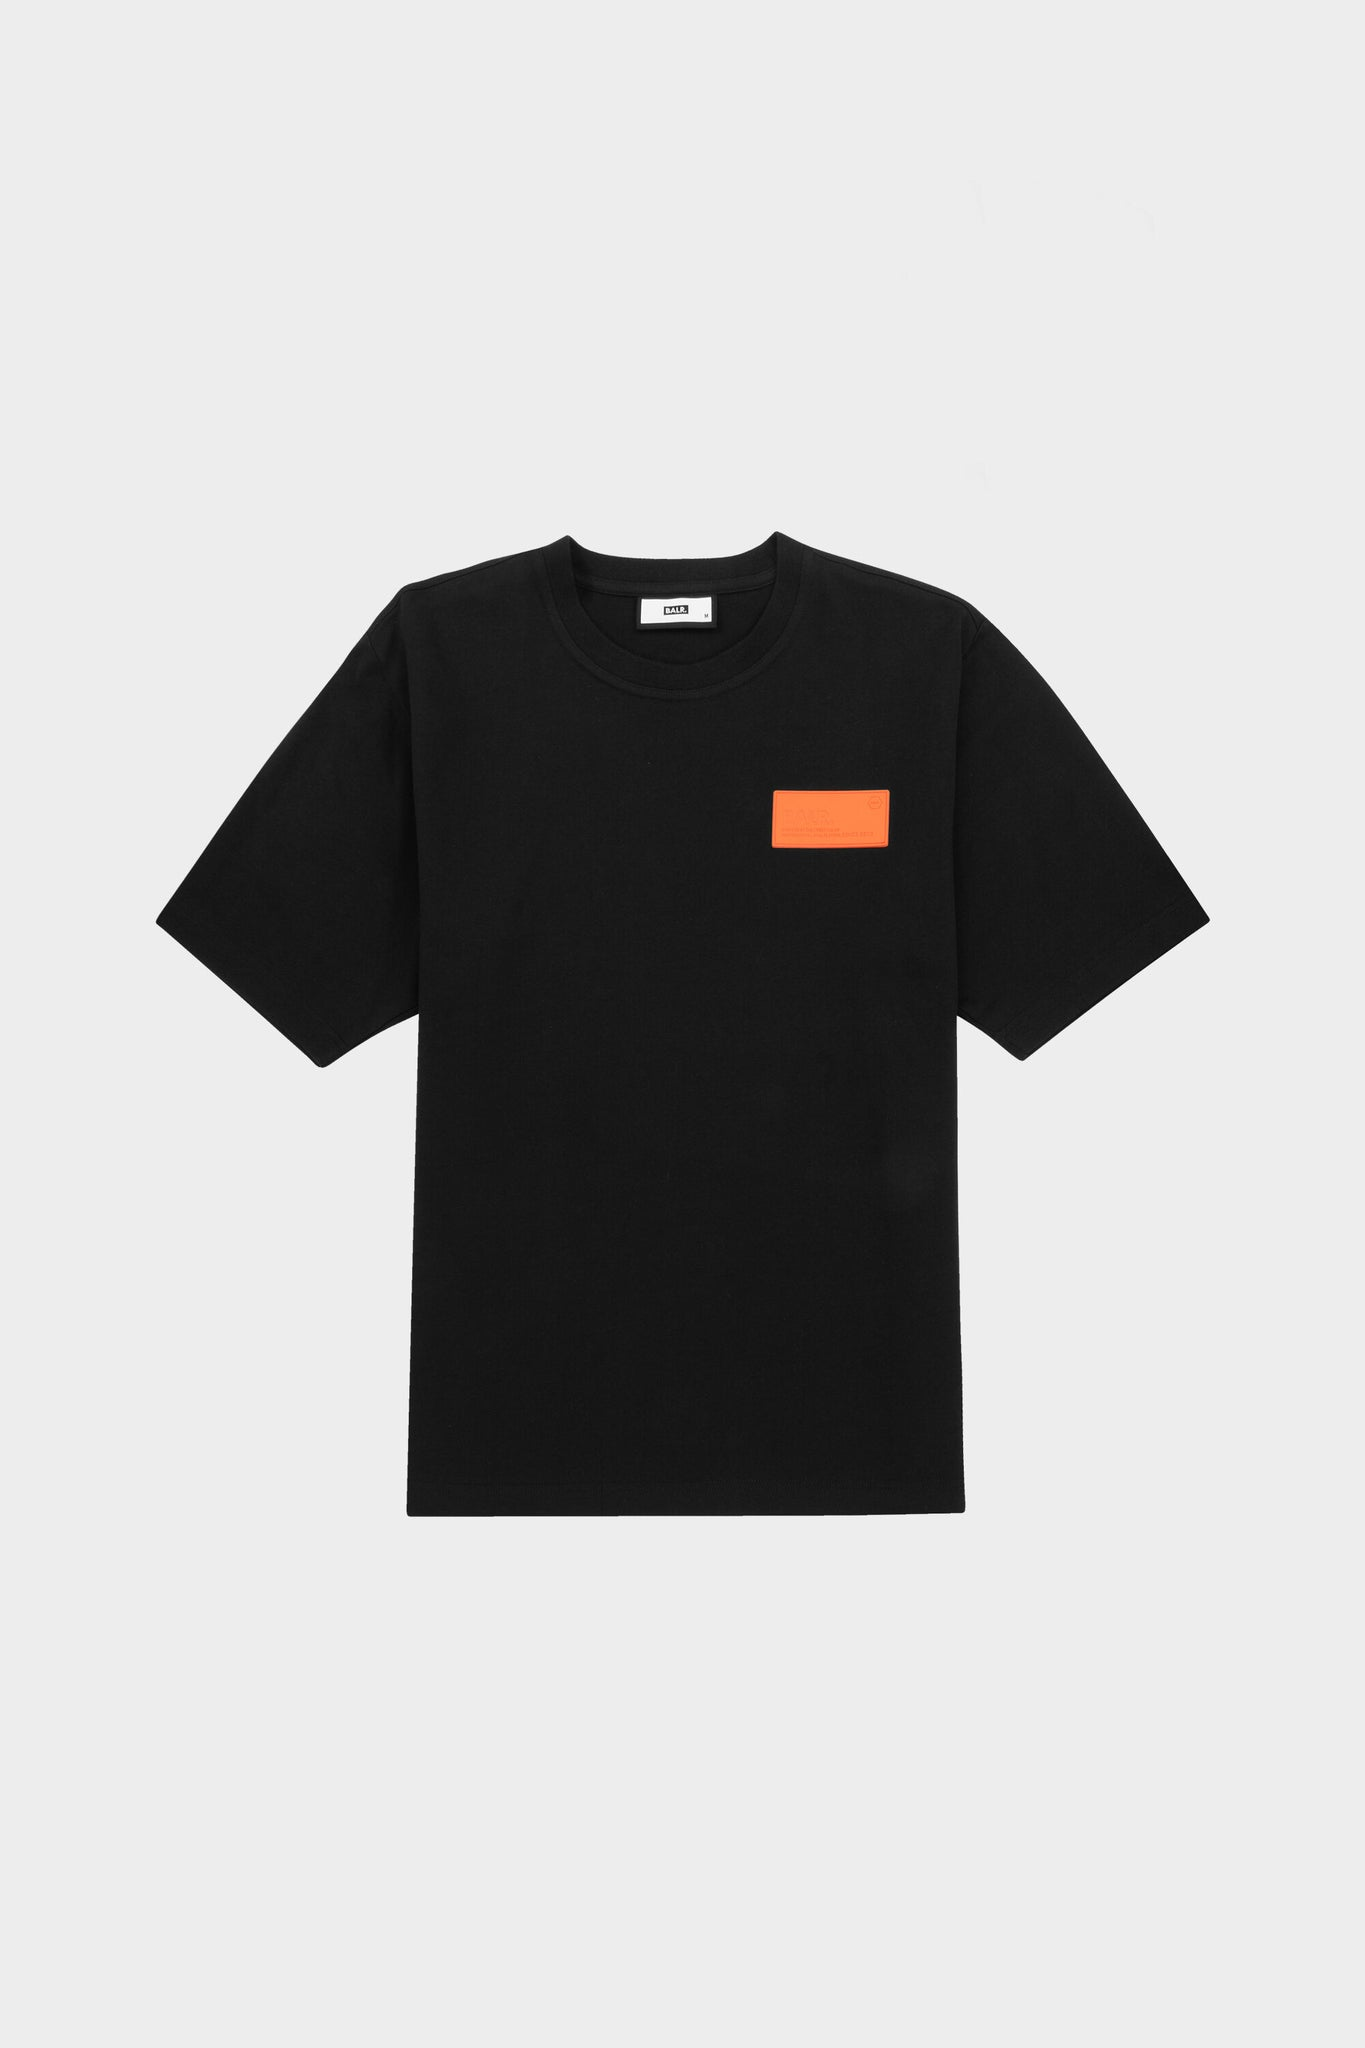 BALR. Badge Loose Fit T-Shirt Black